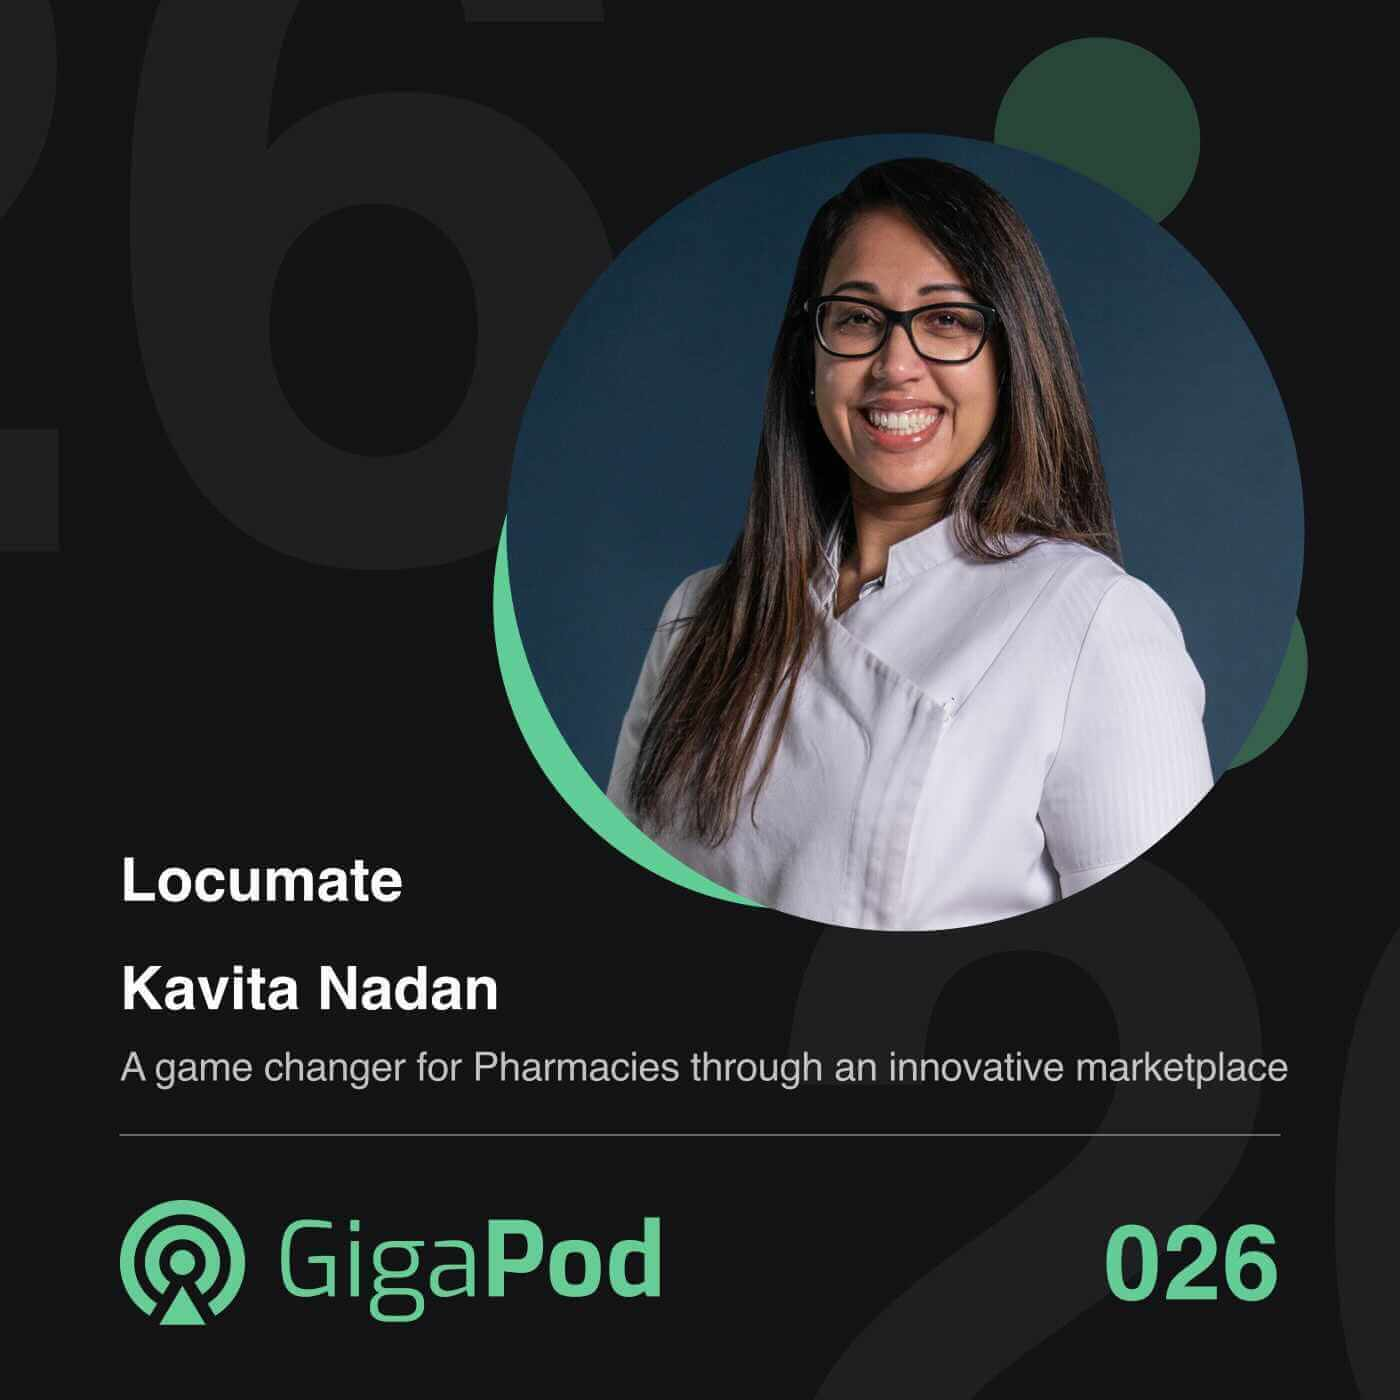 5 Tips for Marketplaces from Founder of Locumate